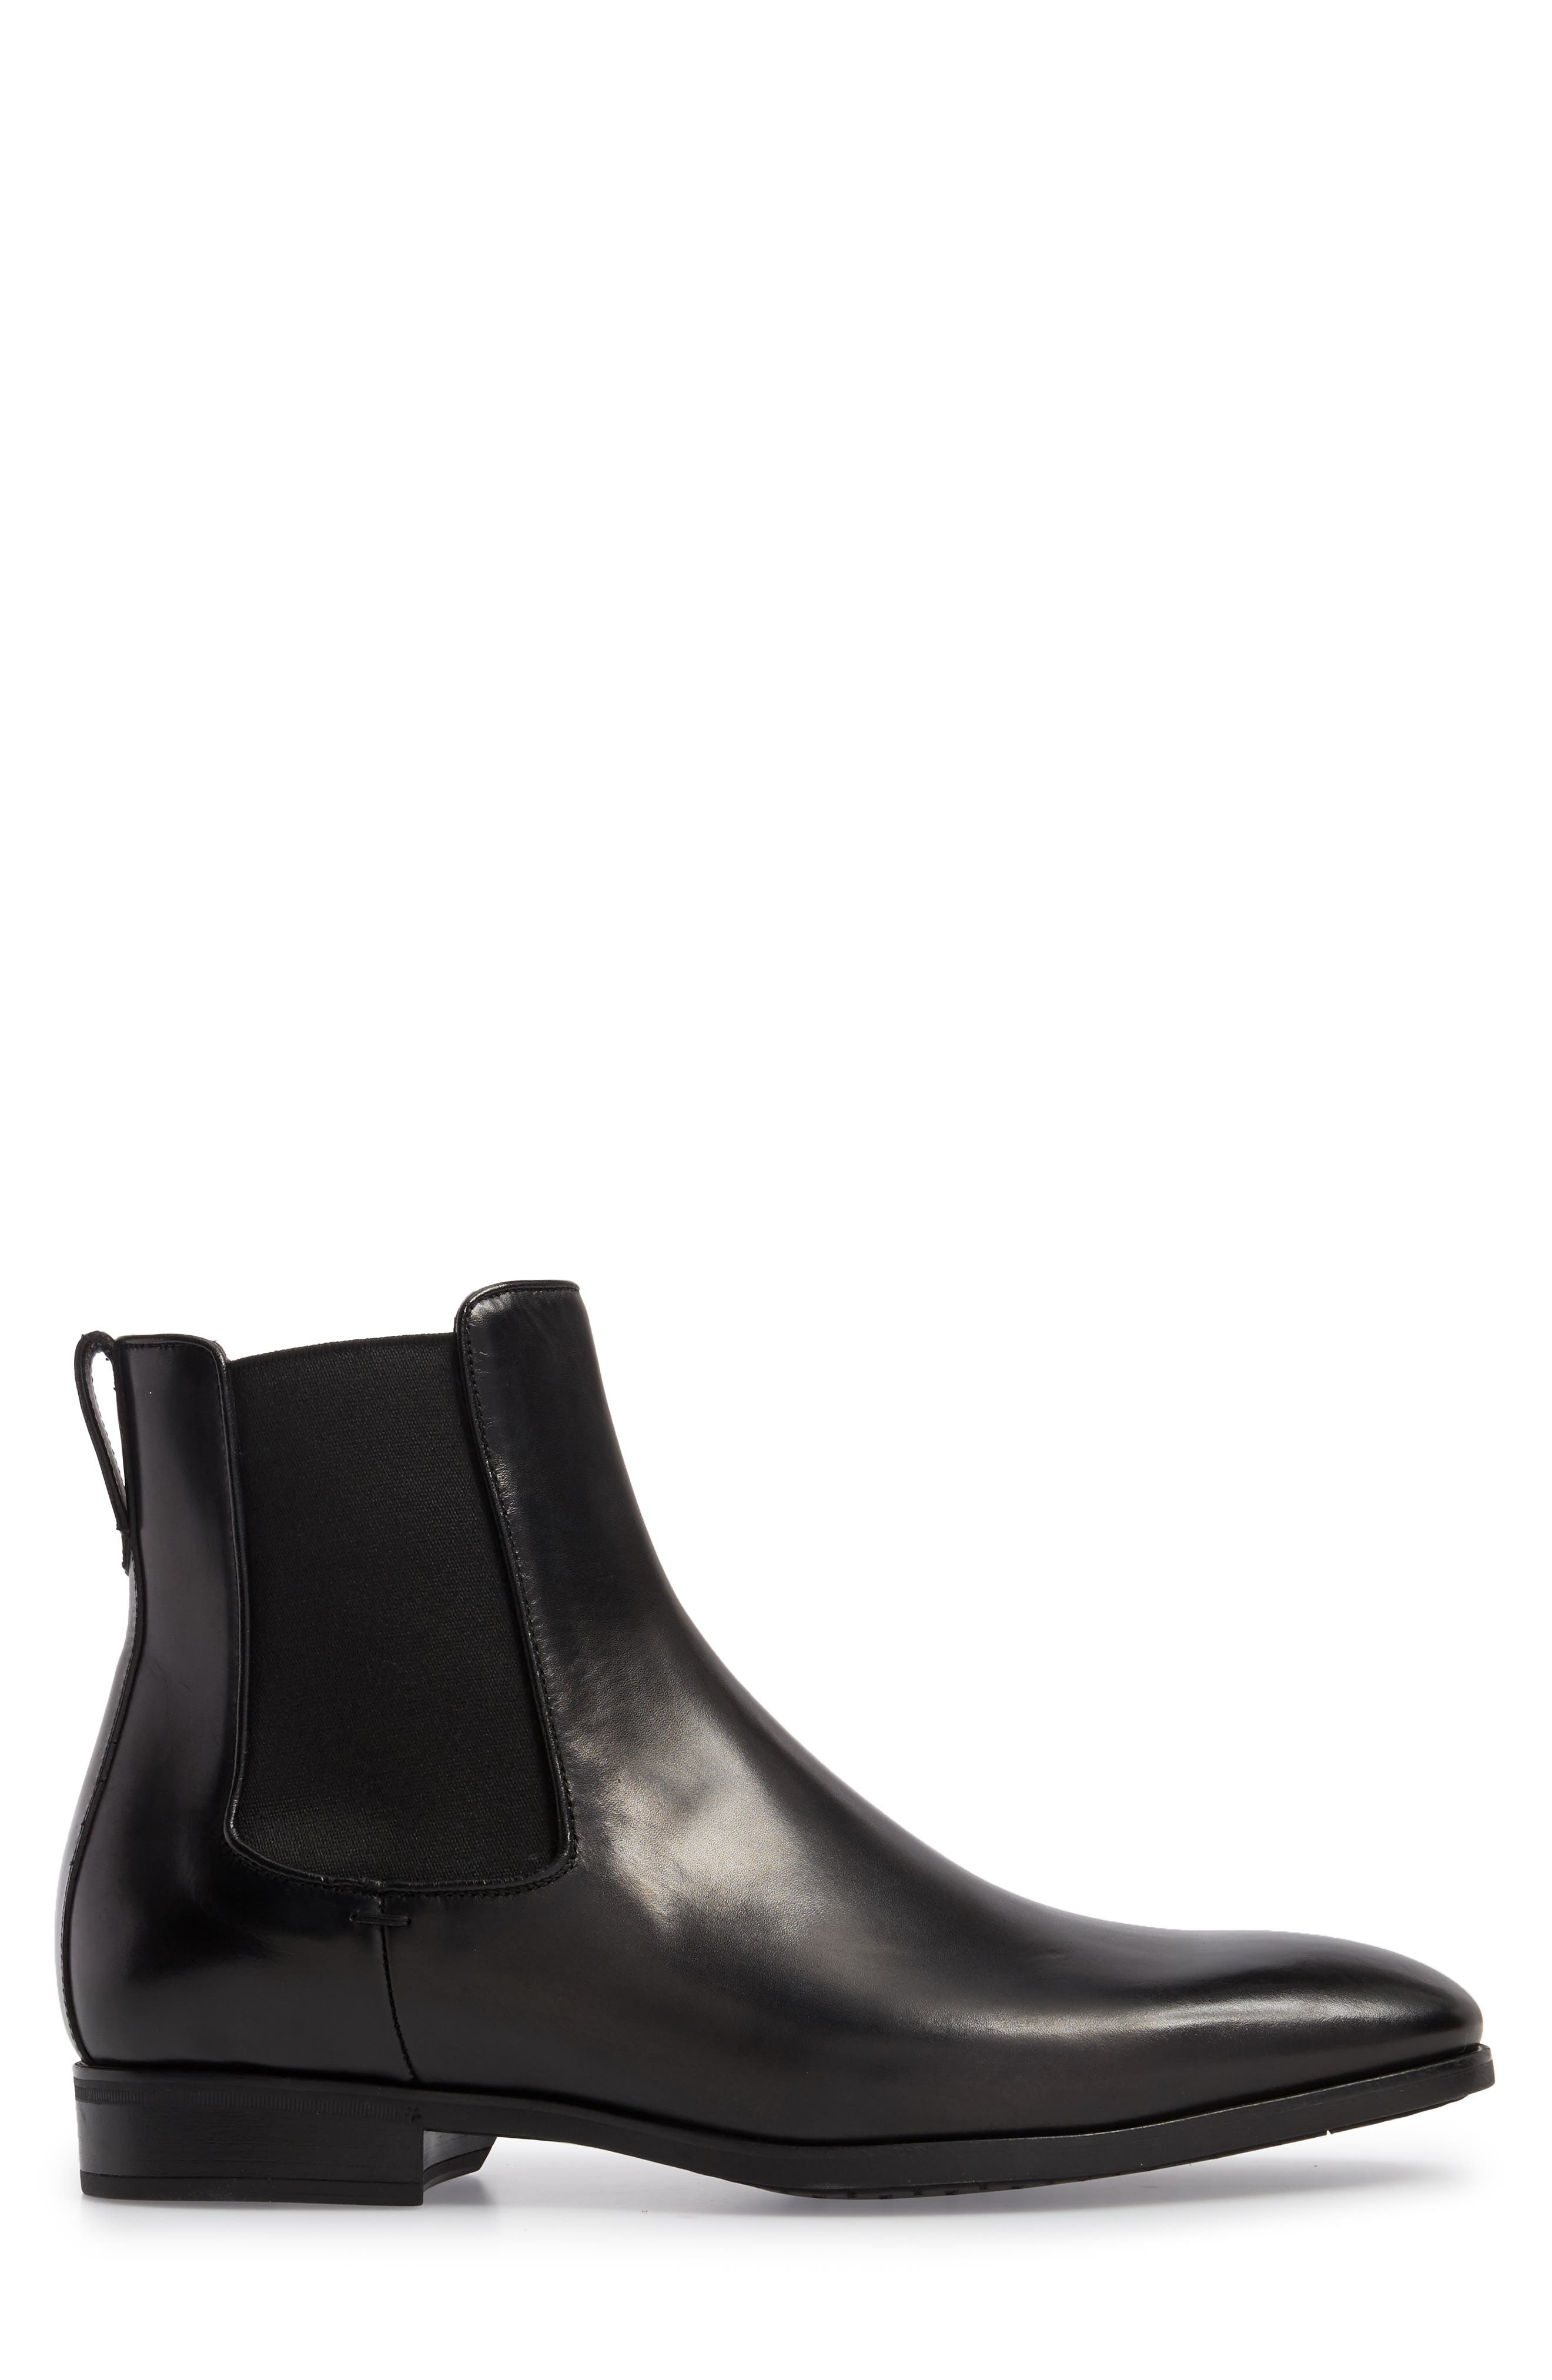 TO BOOT NEW YORK, Aldrich Mid Chelsea Boot, Alternate thumbnail 3, color, BLACK/ BLACK LEATHER